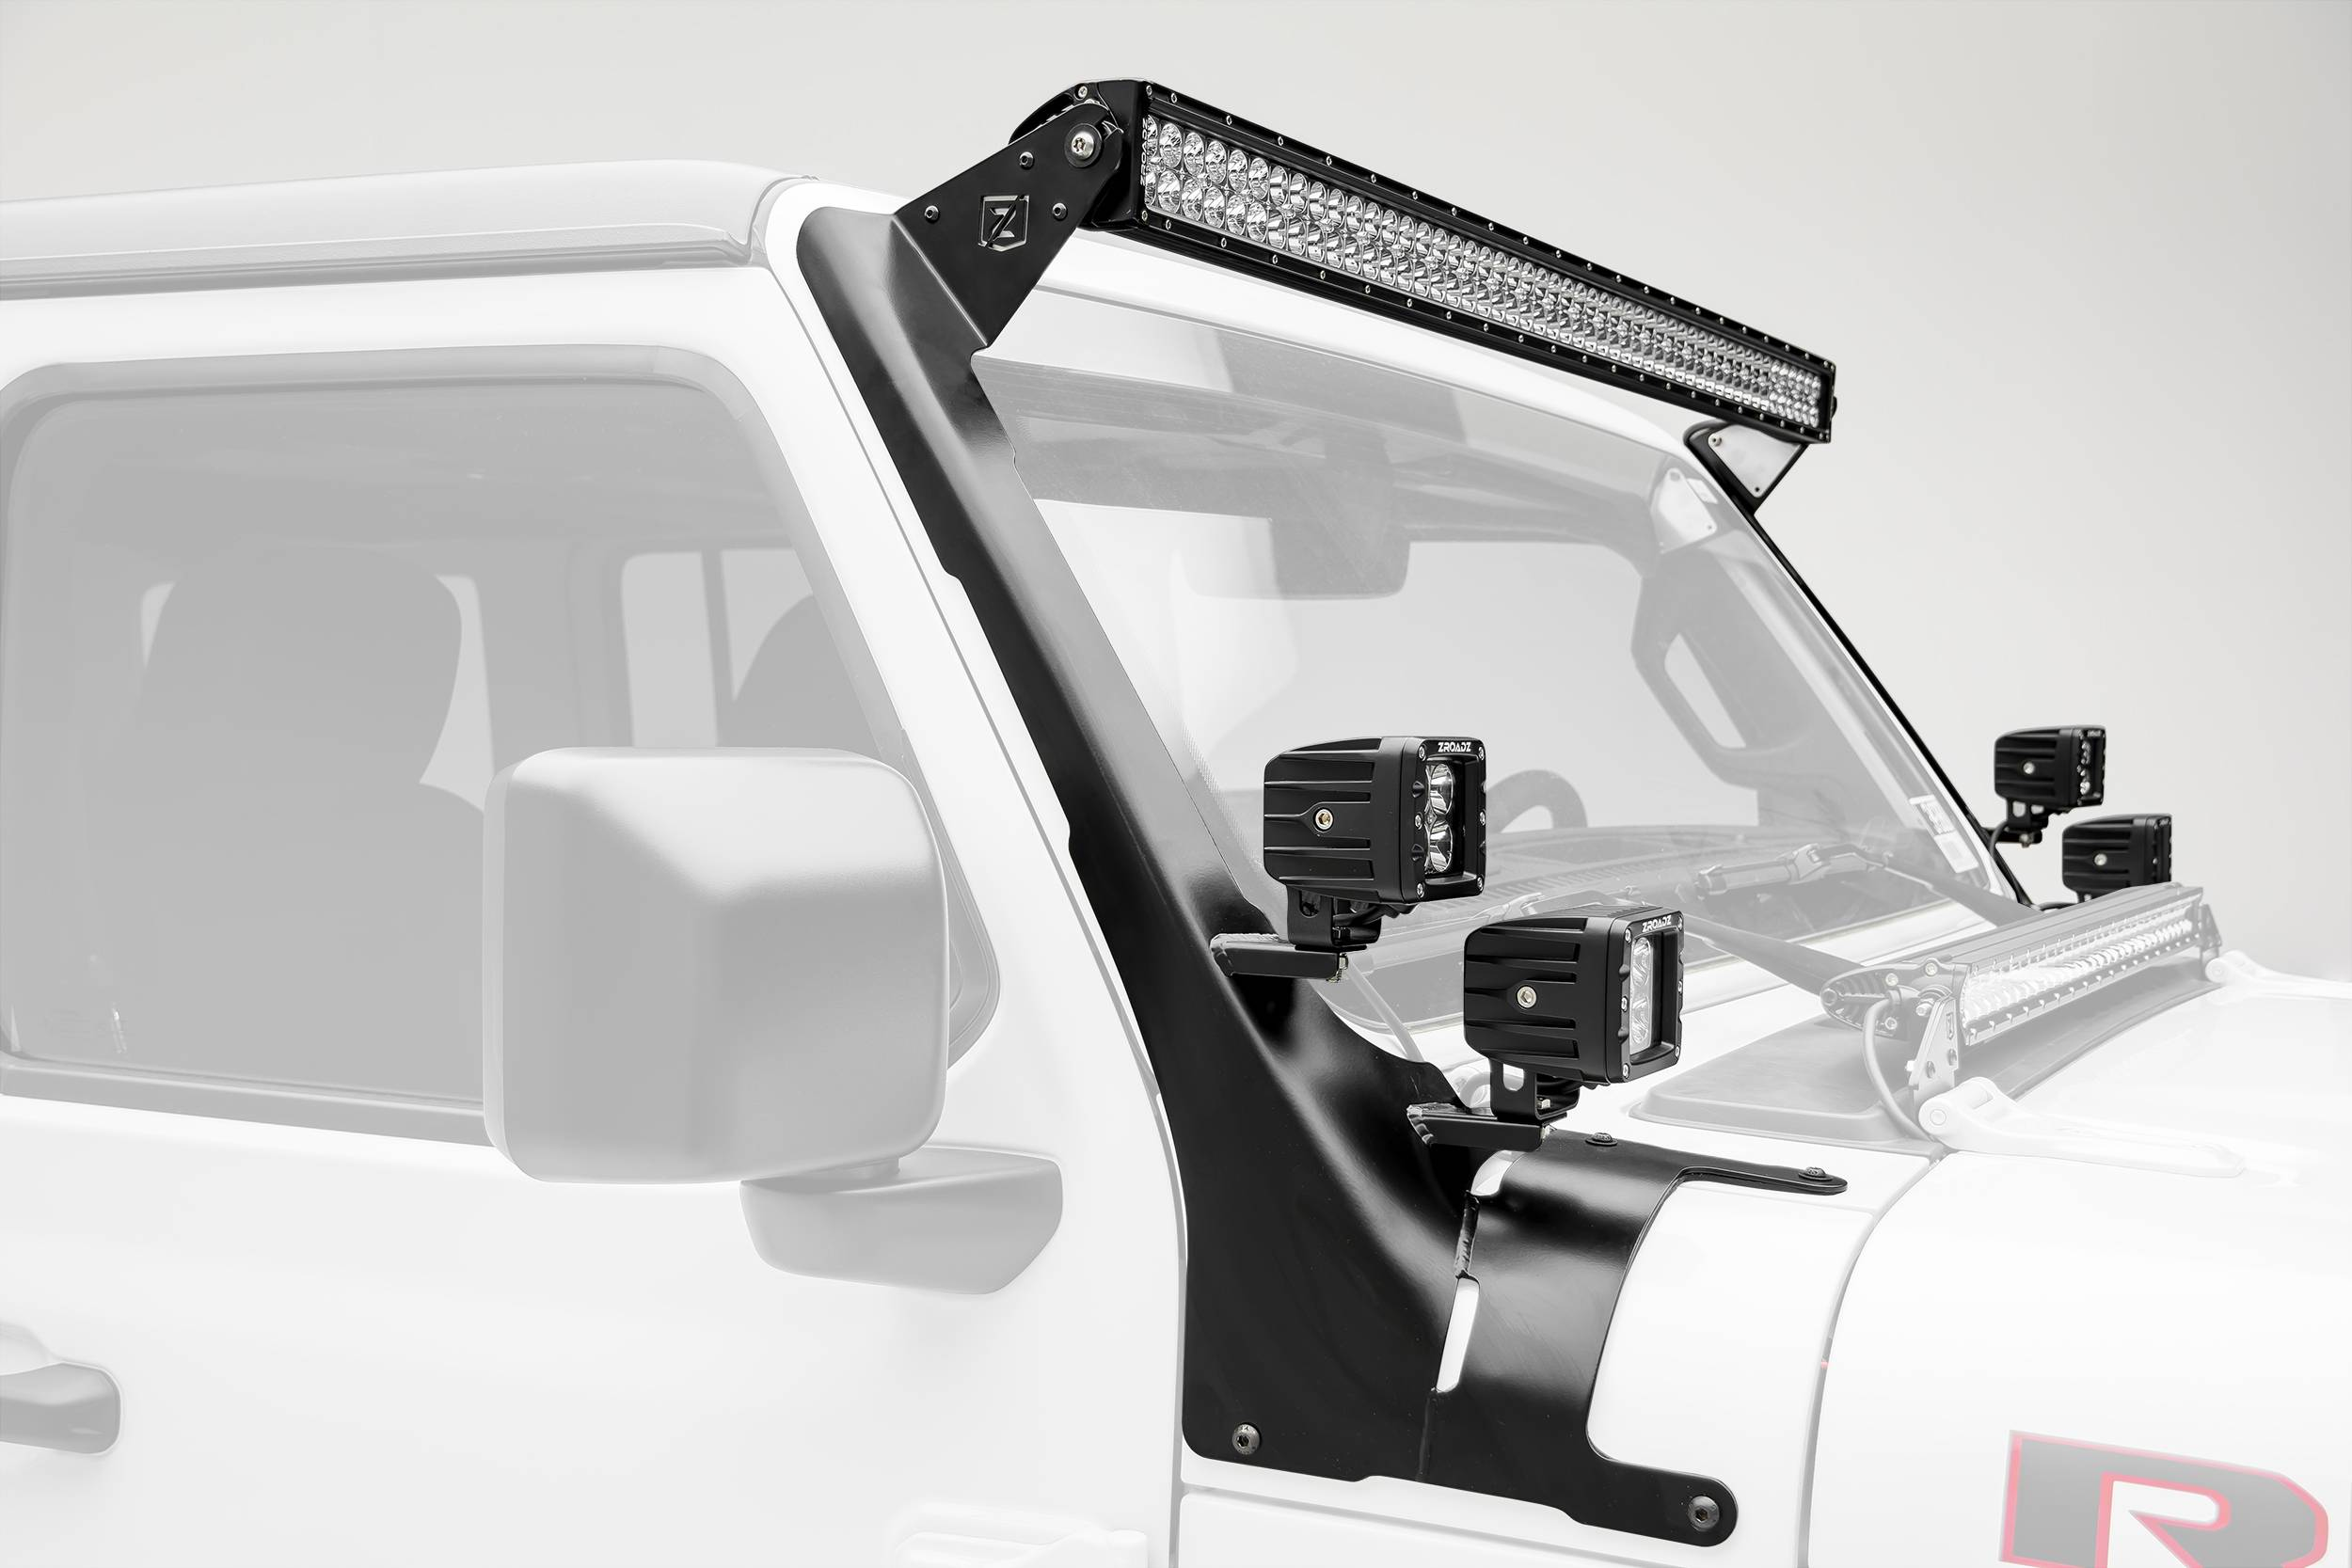 ZROADZ                                             - Jeep JL, Gladiator Front Roof LED Kit, Incl. (1) 50 Inch LED Straight Double Row Light Bar and (4) 3 Inch LED Pod Lights - PN #Z374831-KIT4